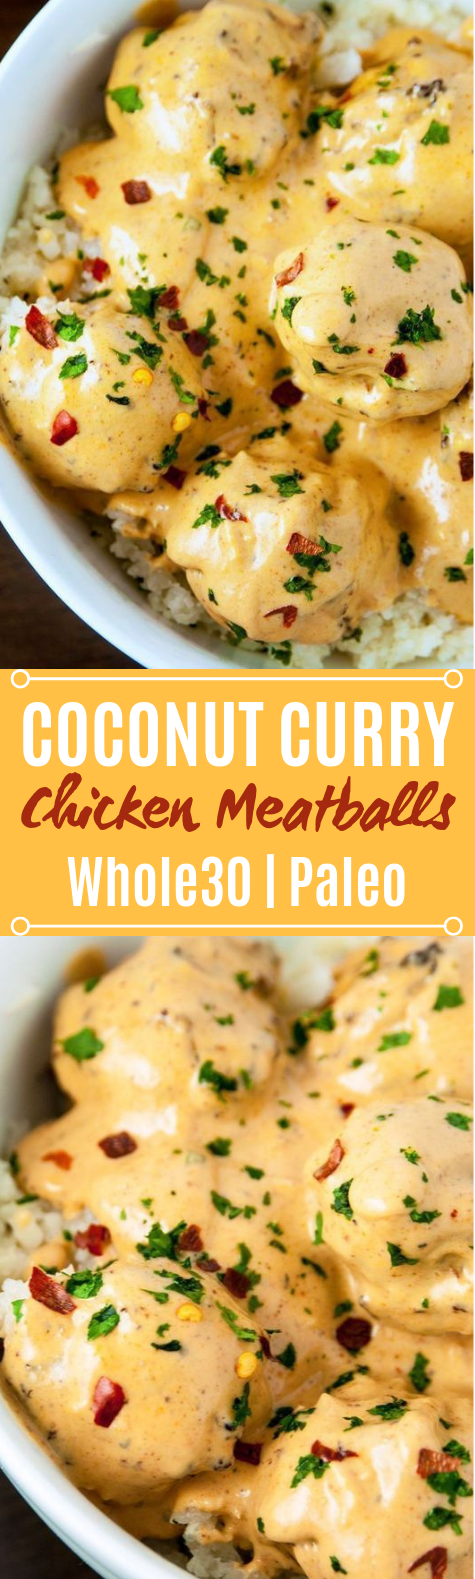 Coconut Curry Chicken Meatballs #healthy #whole30